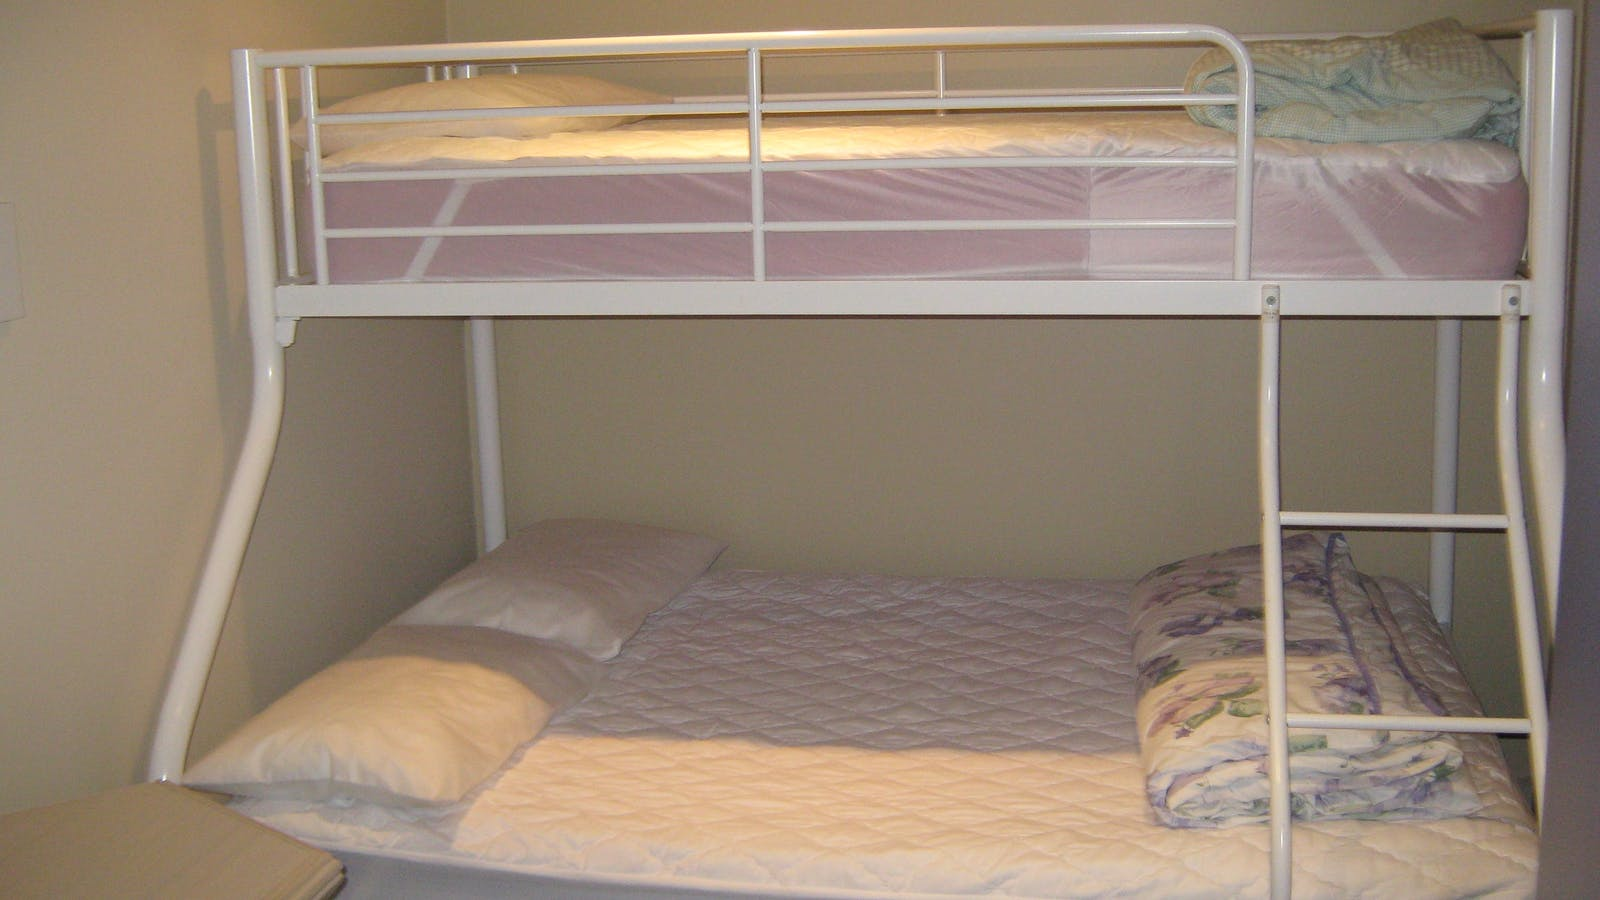 Second bedroom with bunk